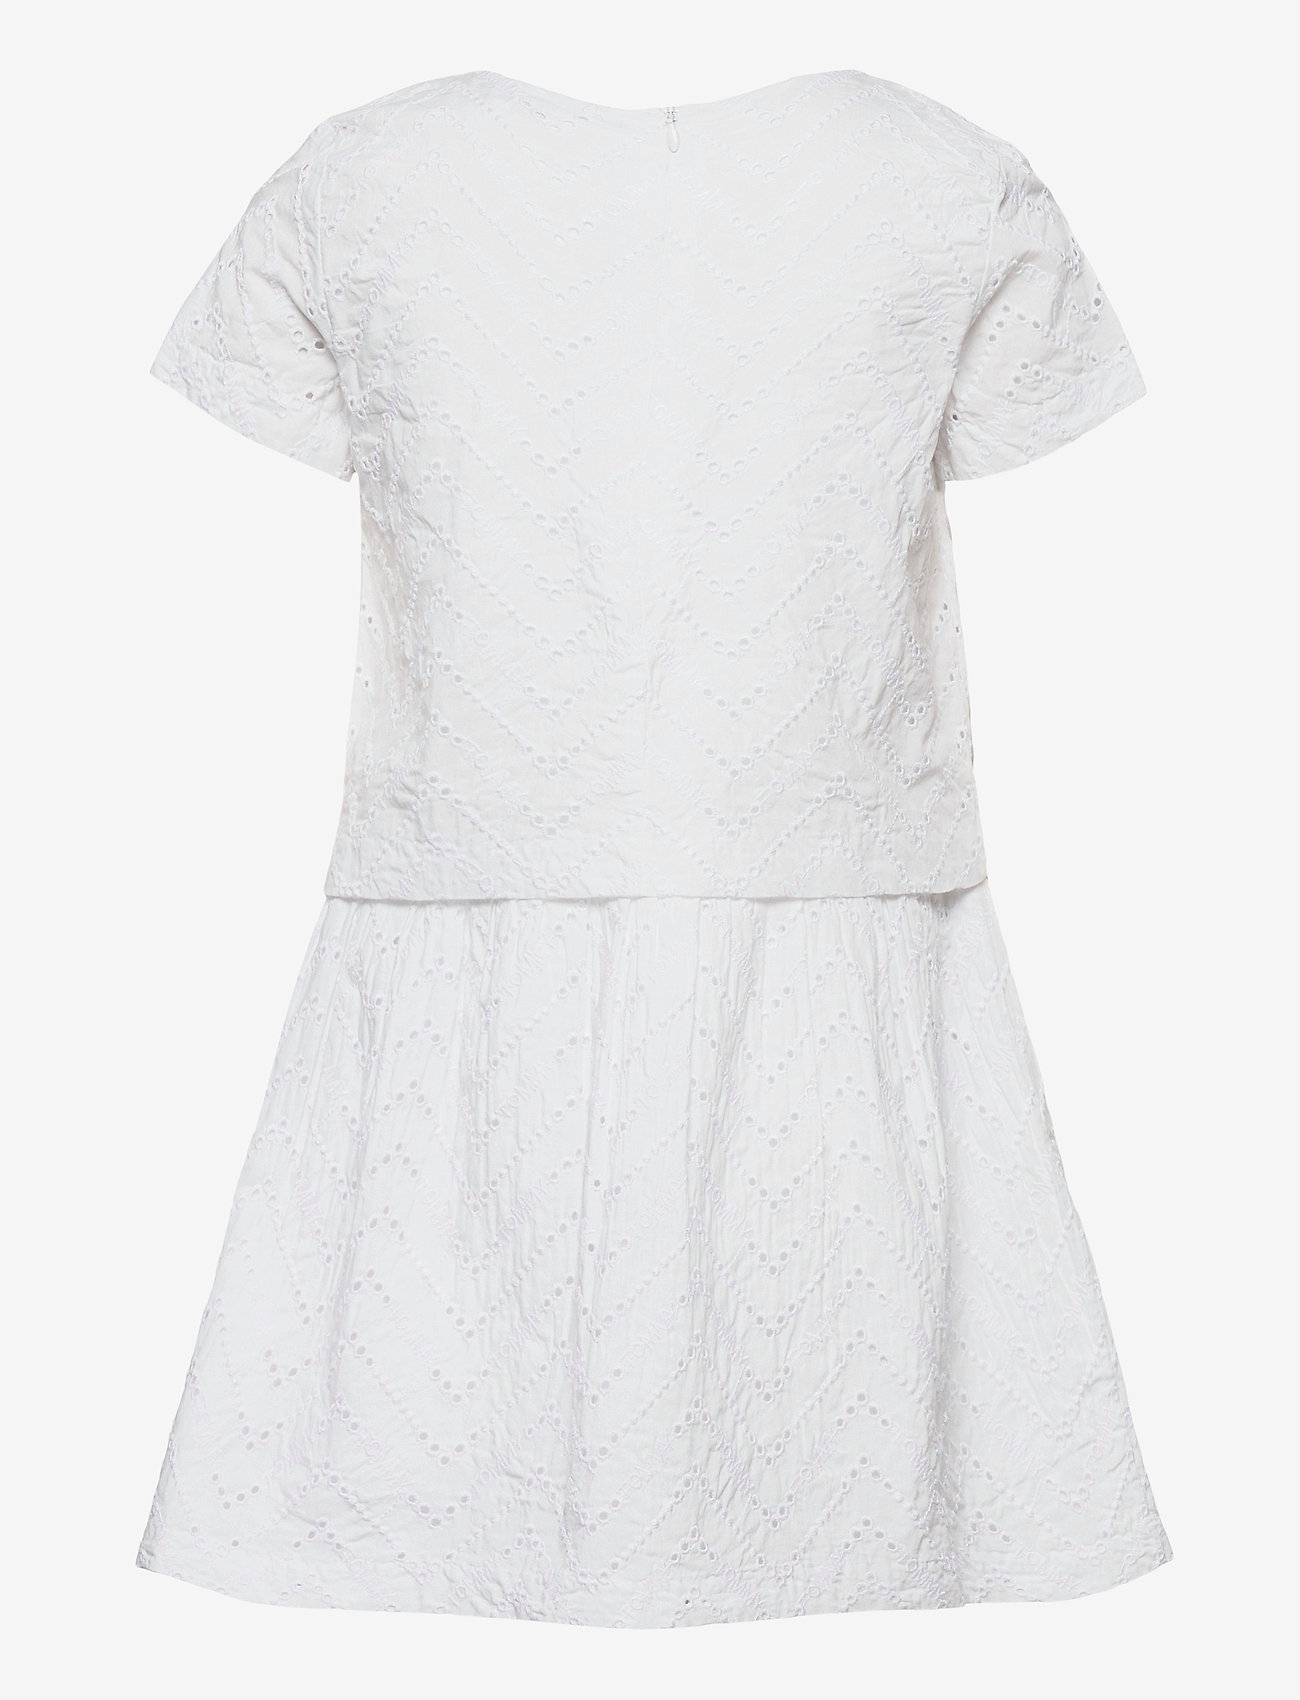 Tommy Hilfiger - BRODERIE ANGLAISE DRESS S/S - kleider - white - 1